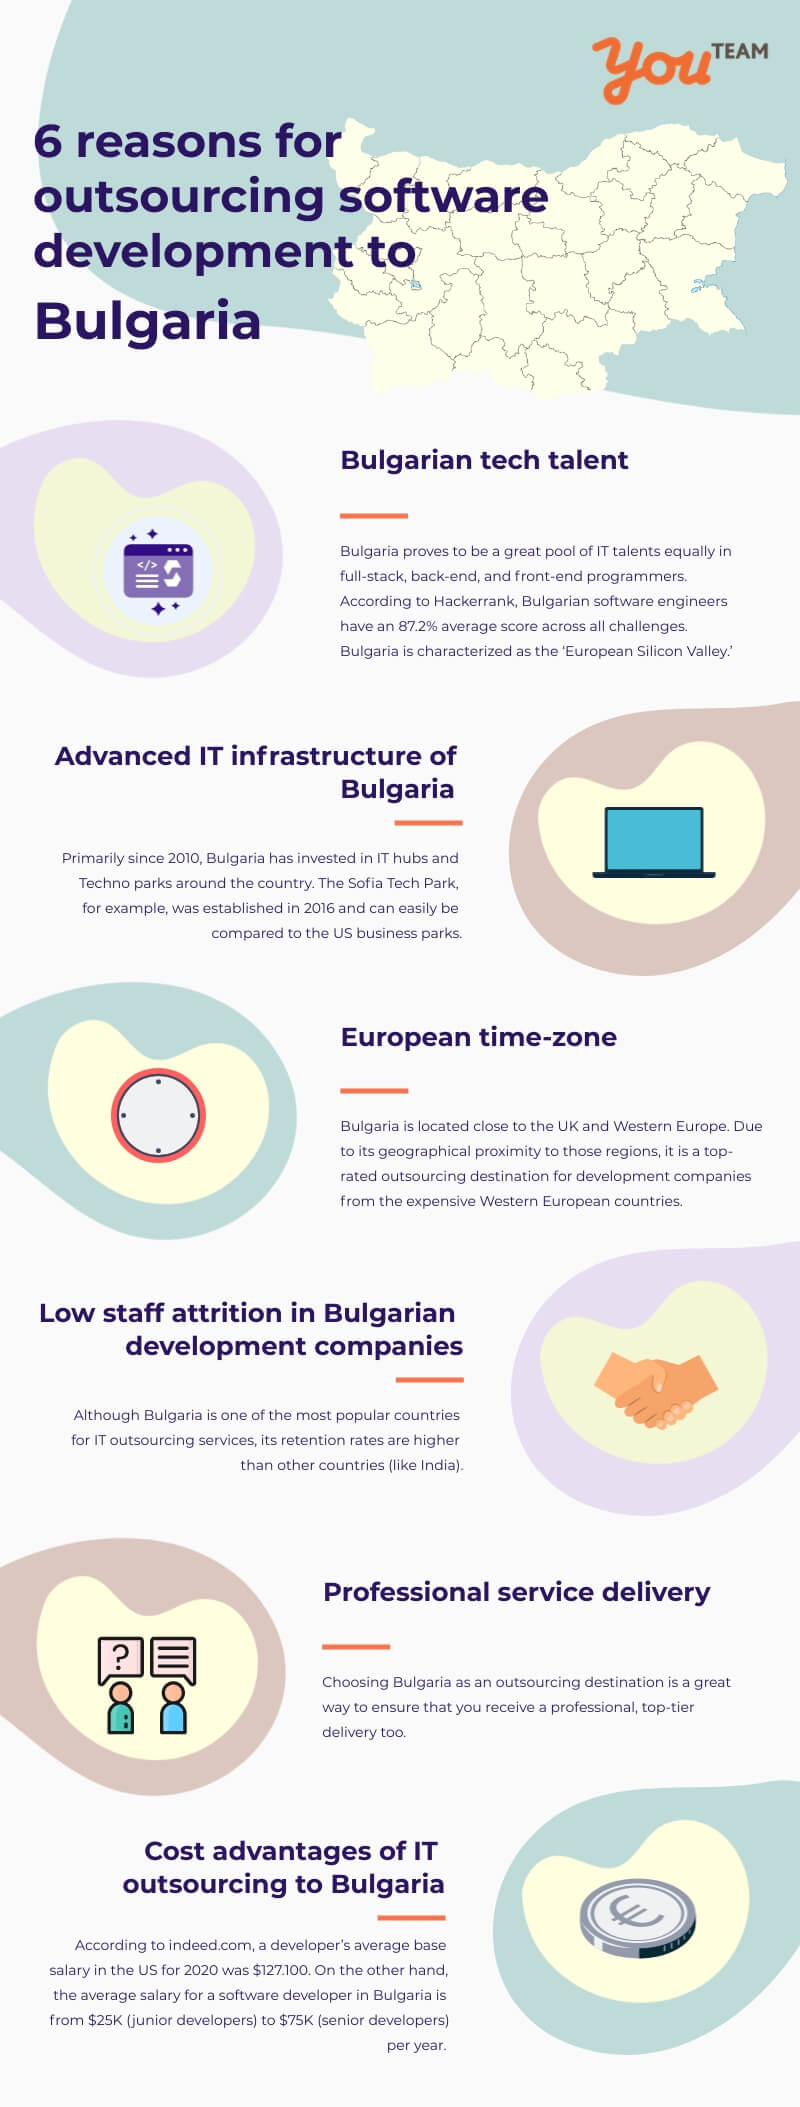 Hire developers from Bulgaria